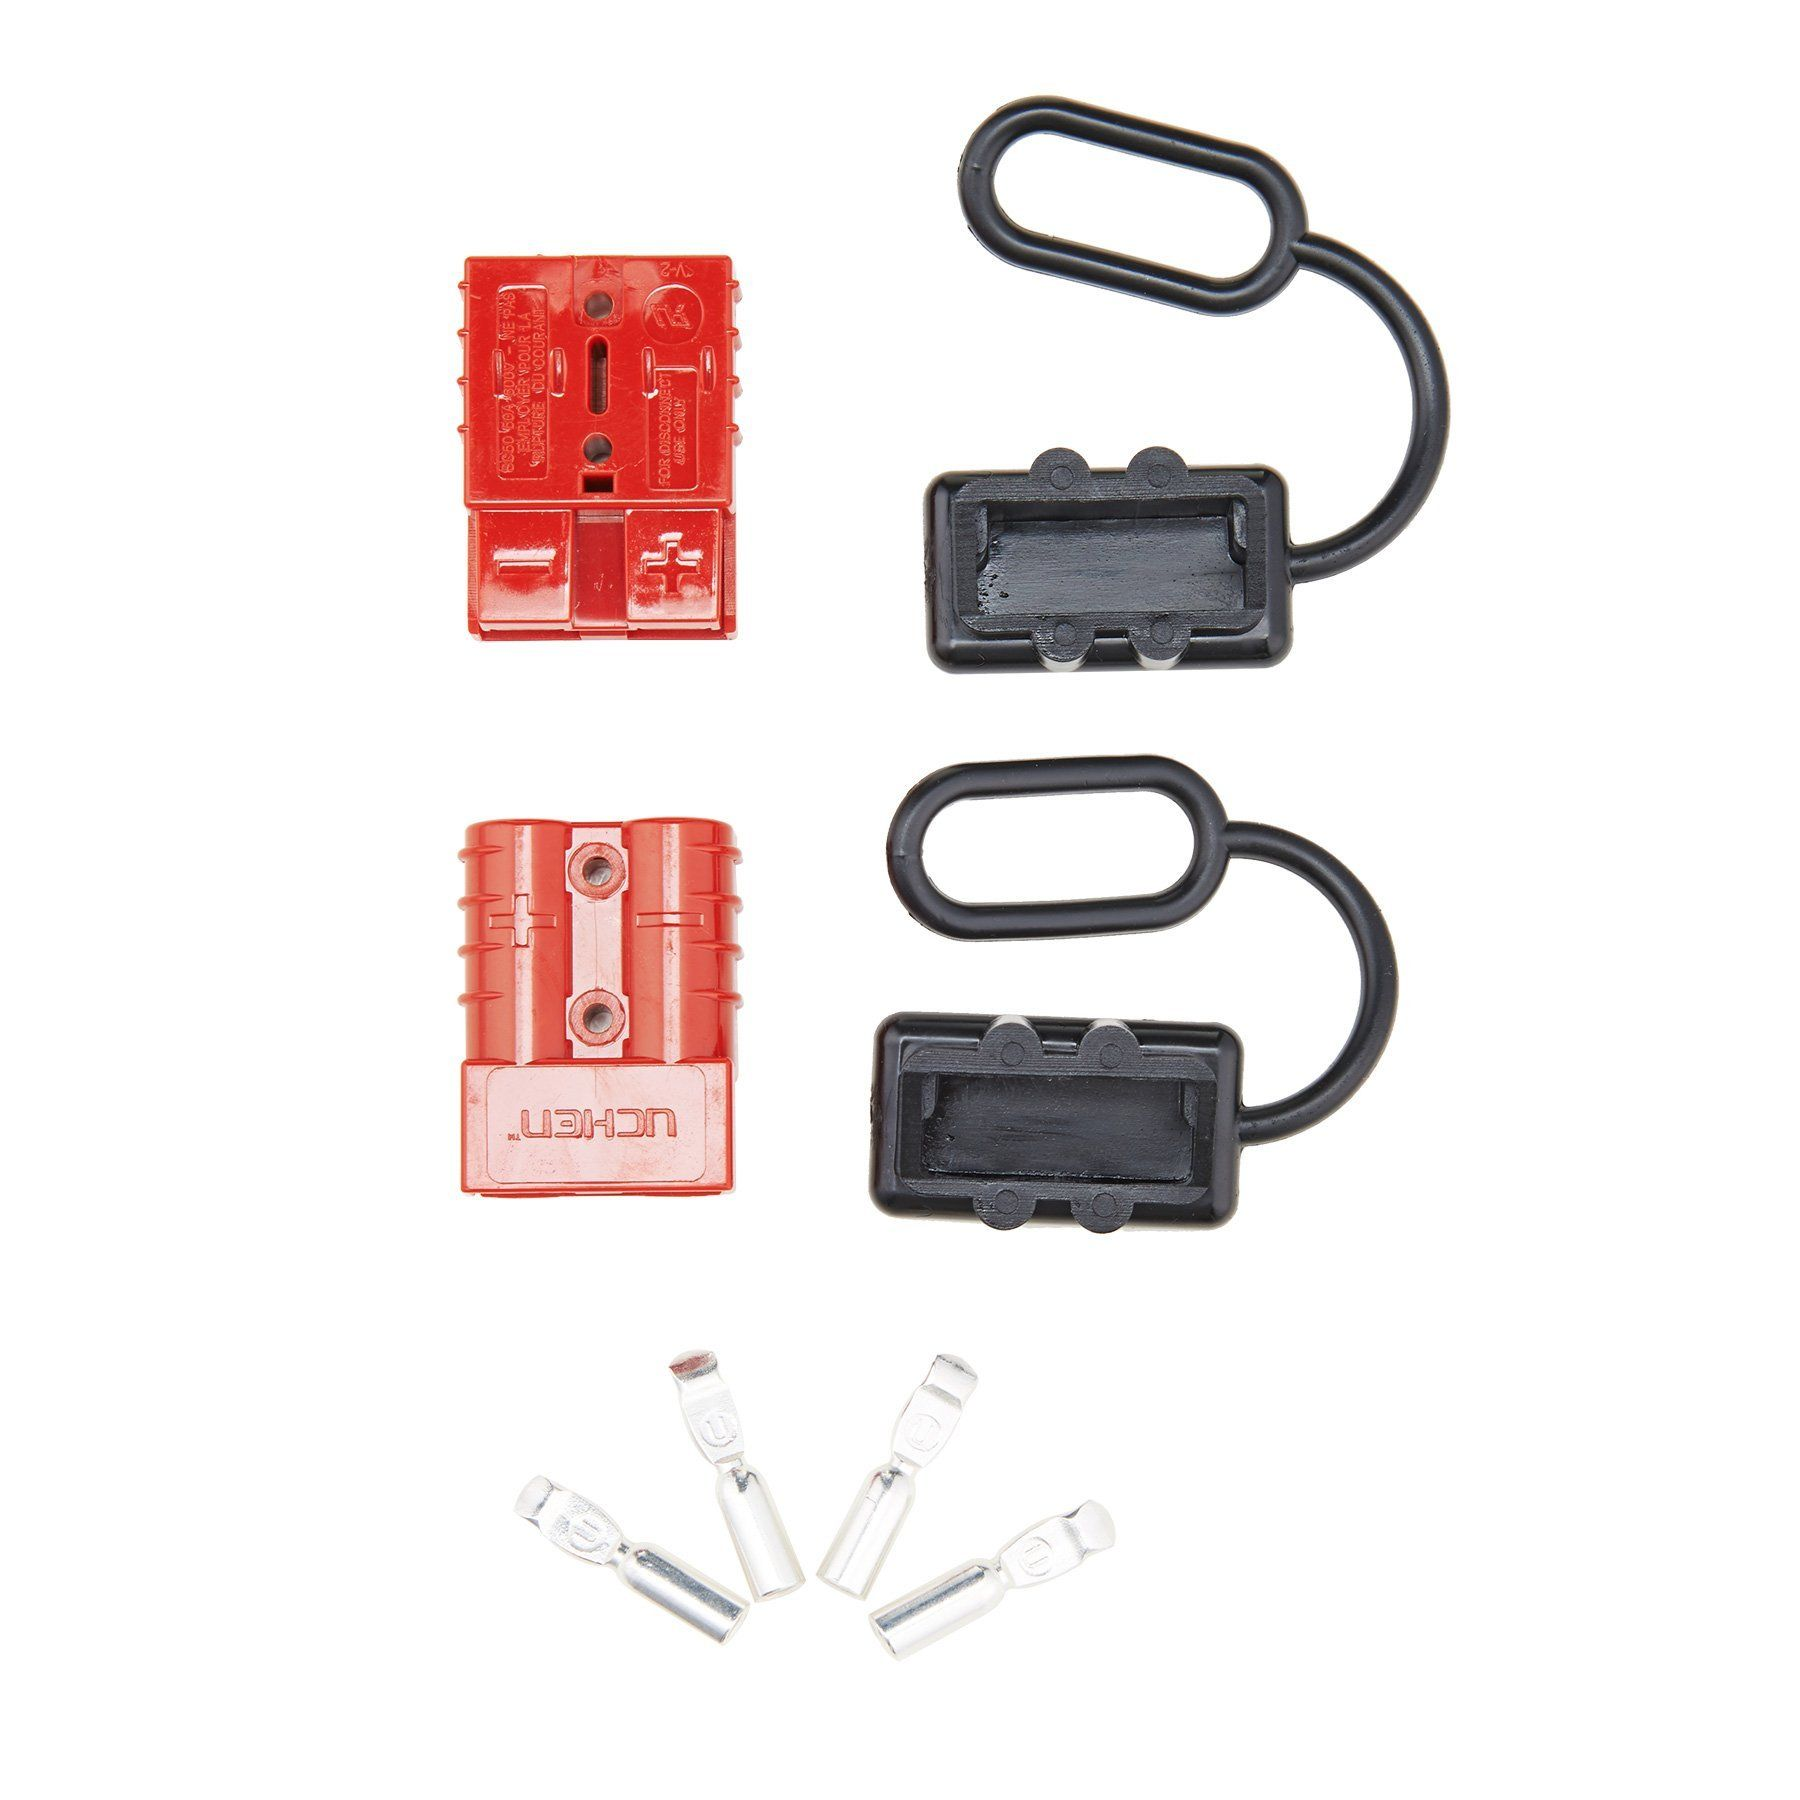 hight resolution of orion motor tech 68 gauge battery quick connect disconnect wire harness plug kit for recovery